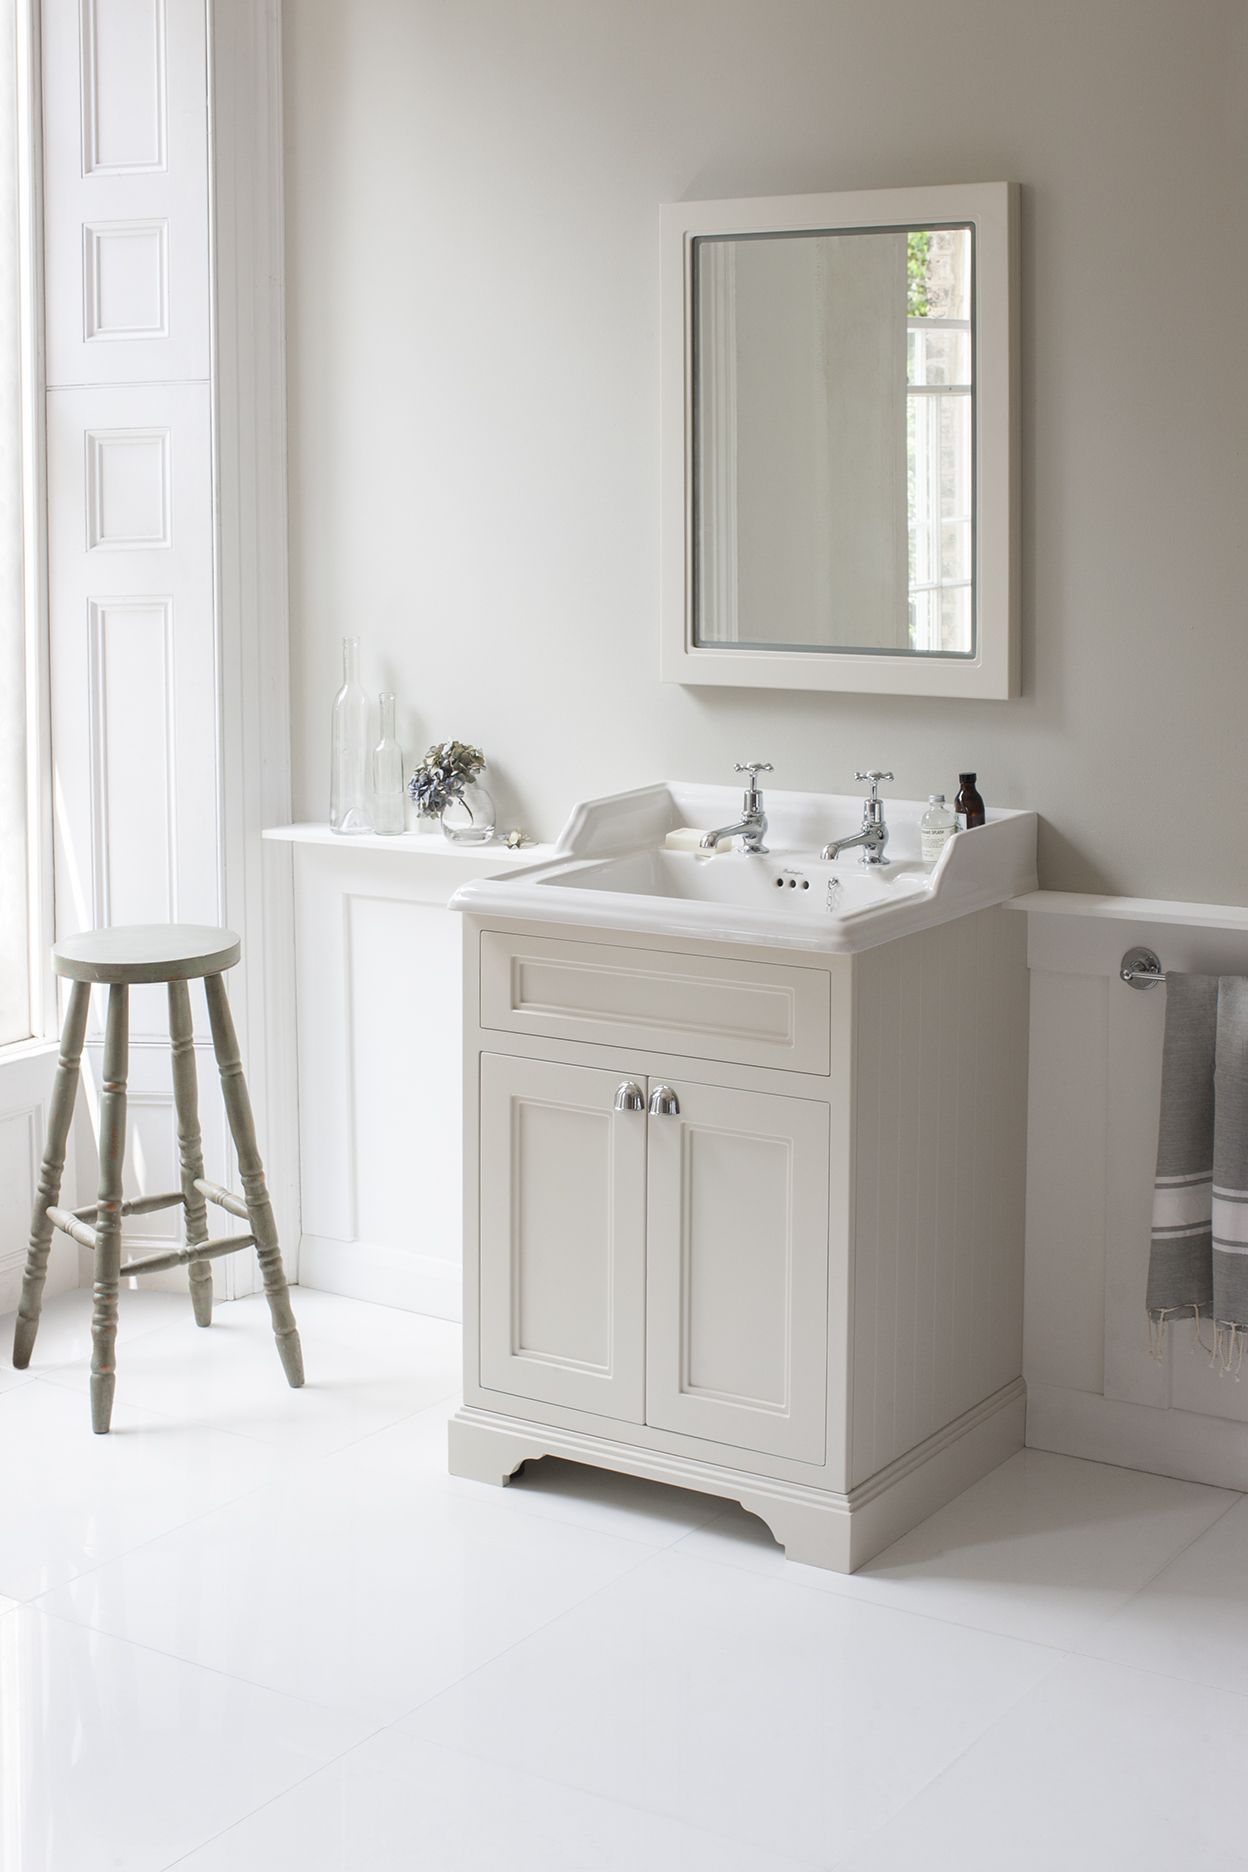 Photos Of Classic style and sophisticated British elegant with the Sand Freestandin Vanity Unit with doors from Burlington Bathrooms